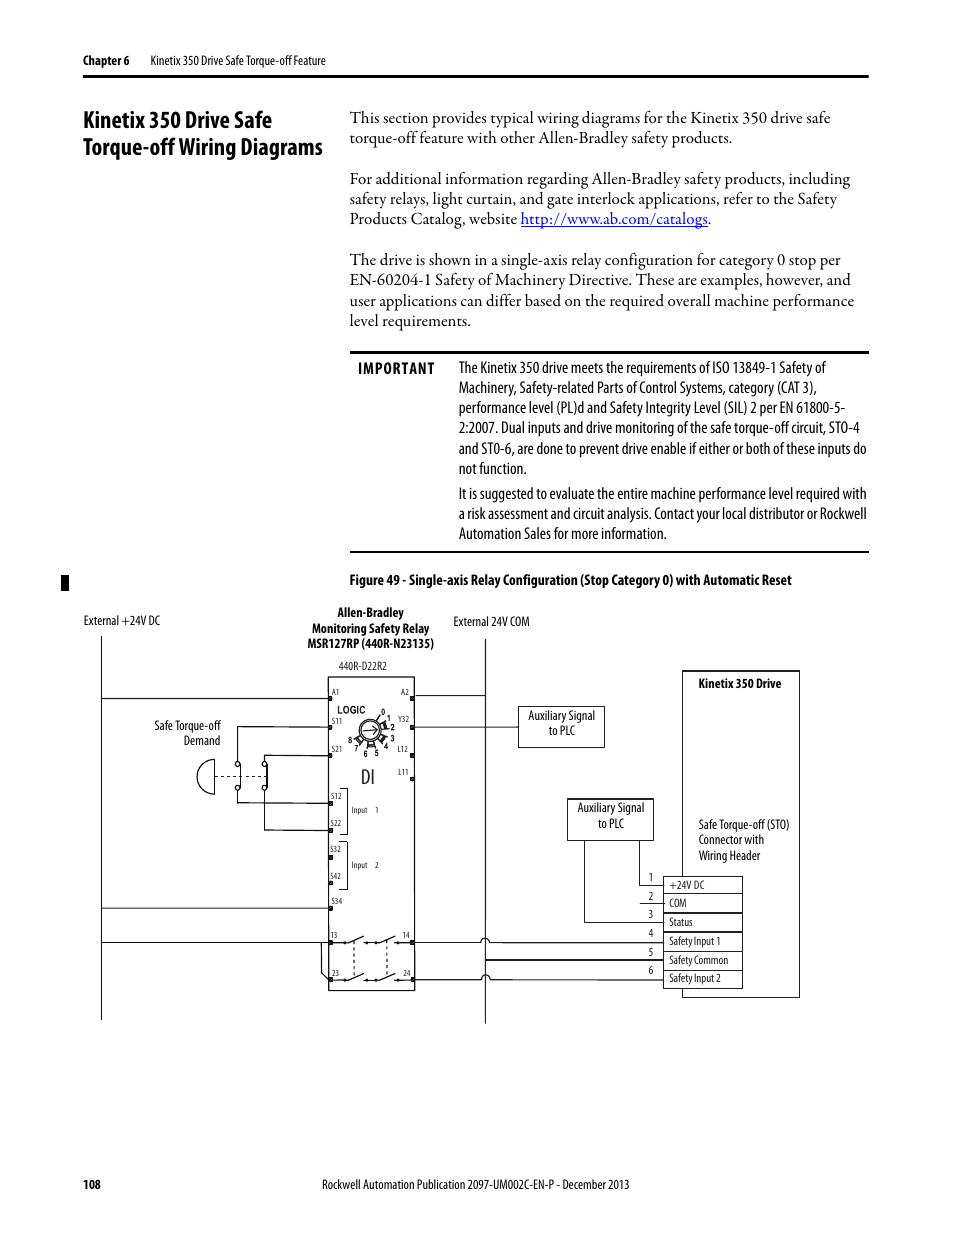 Rockwell Automation 440rd22r2 Wiring Diagram on